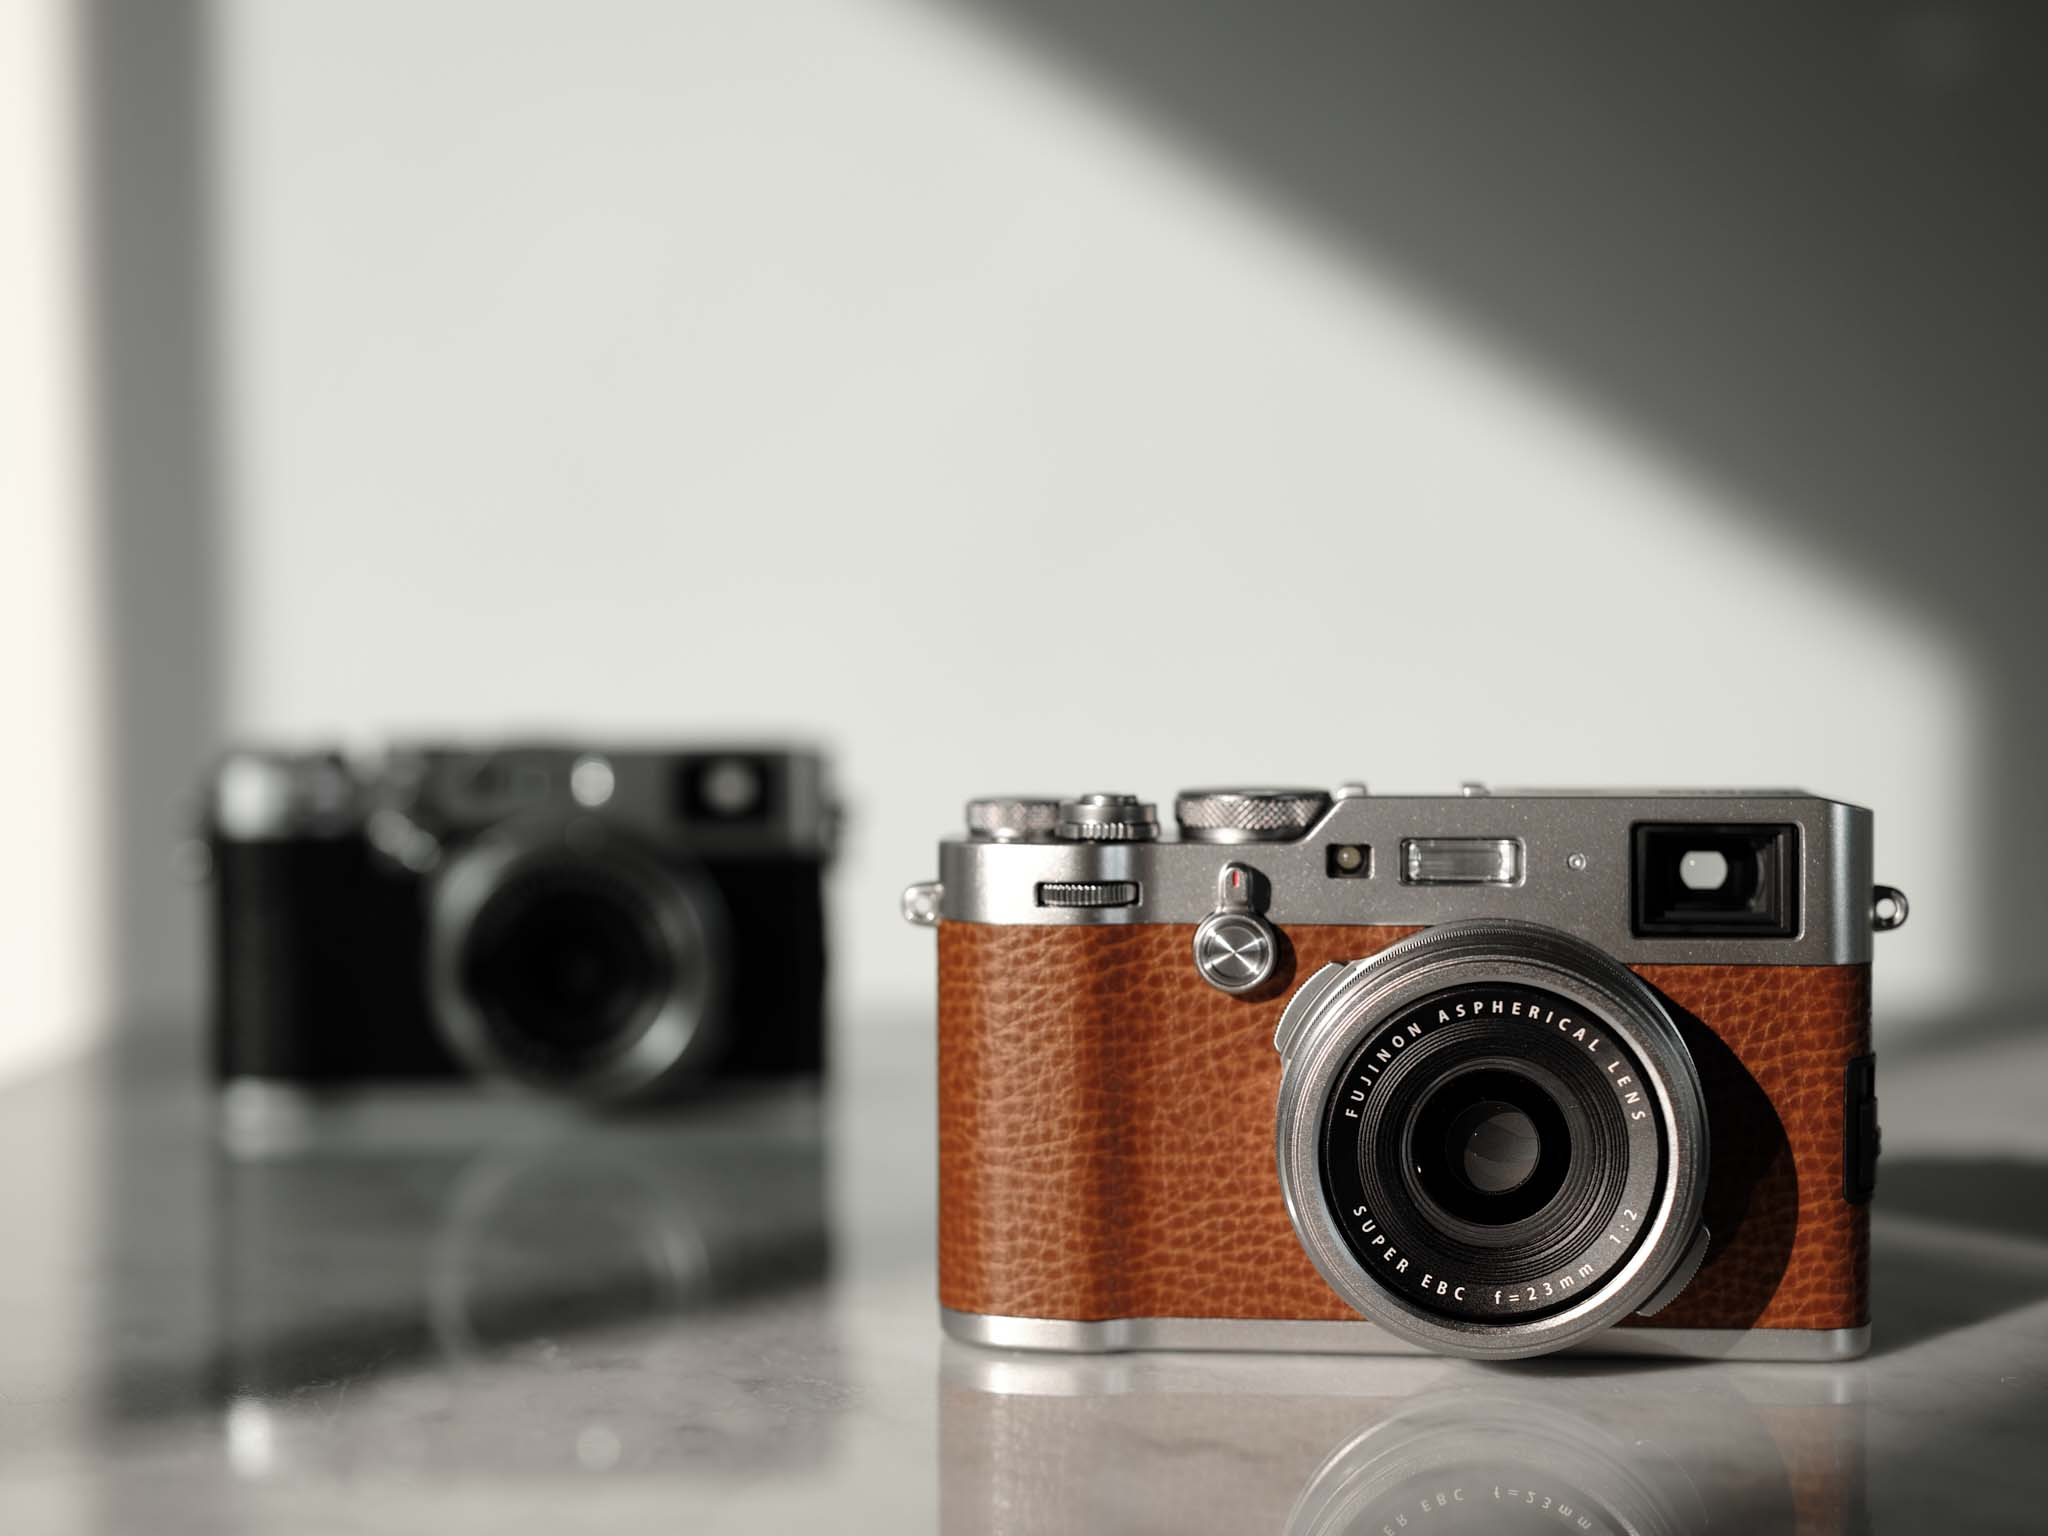 Well now, have you seen the upcoming X-100F in brown